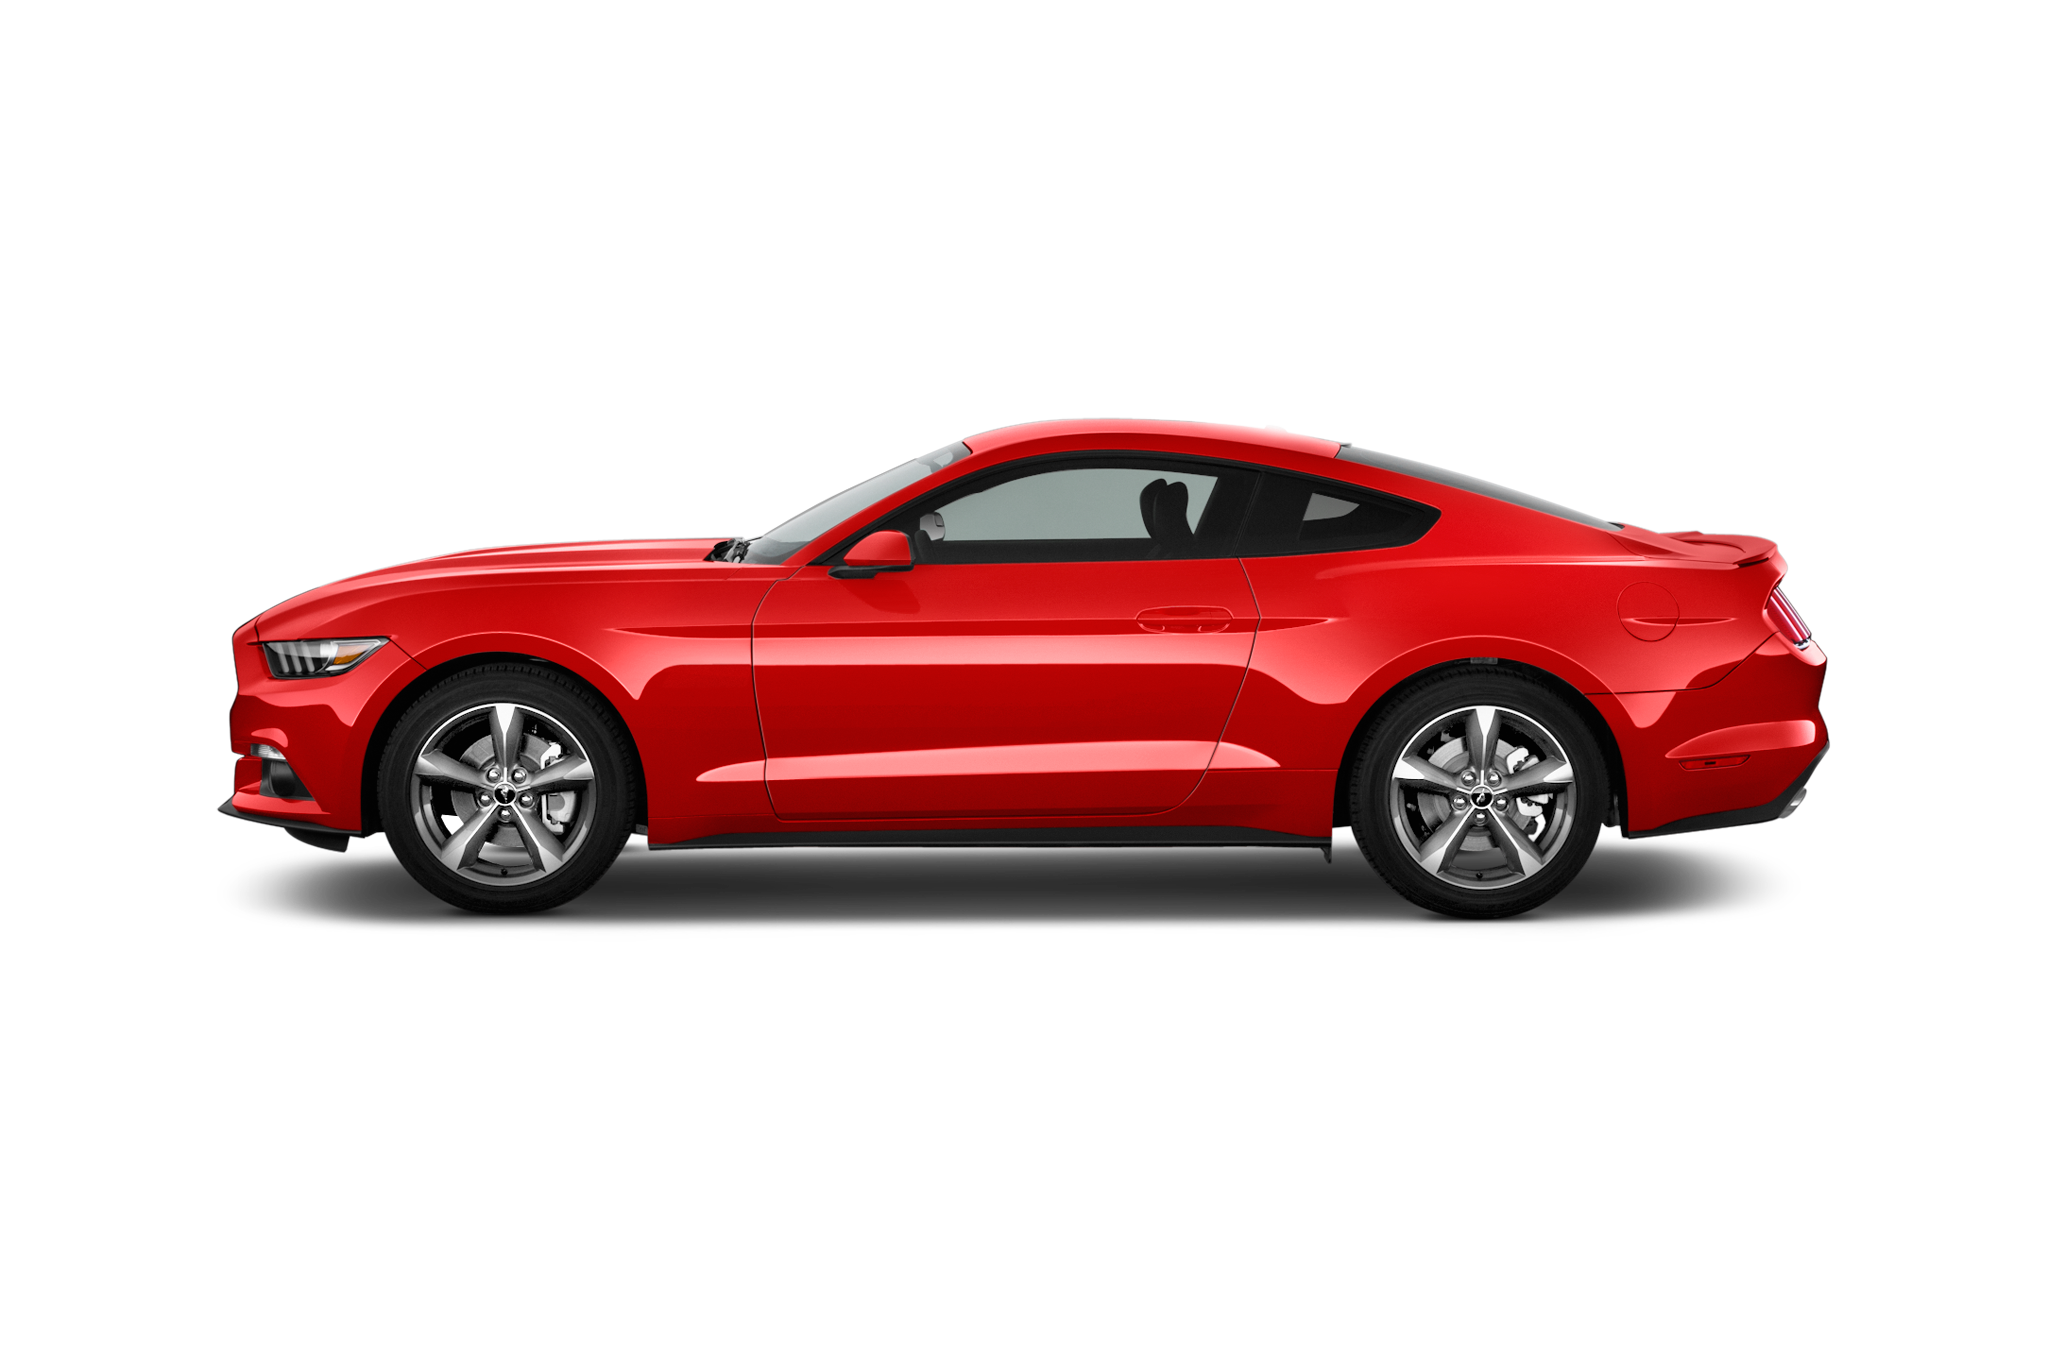 2017 Ford Mustang RTR Stage 2 Review